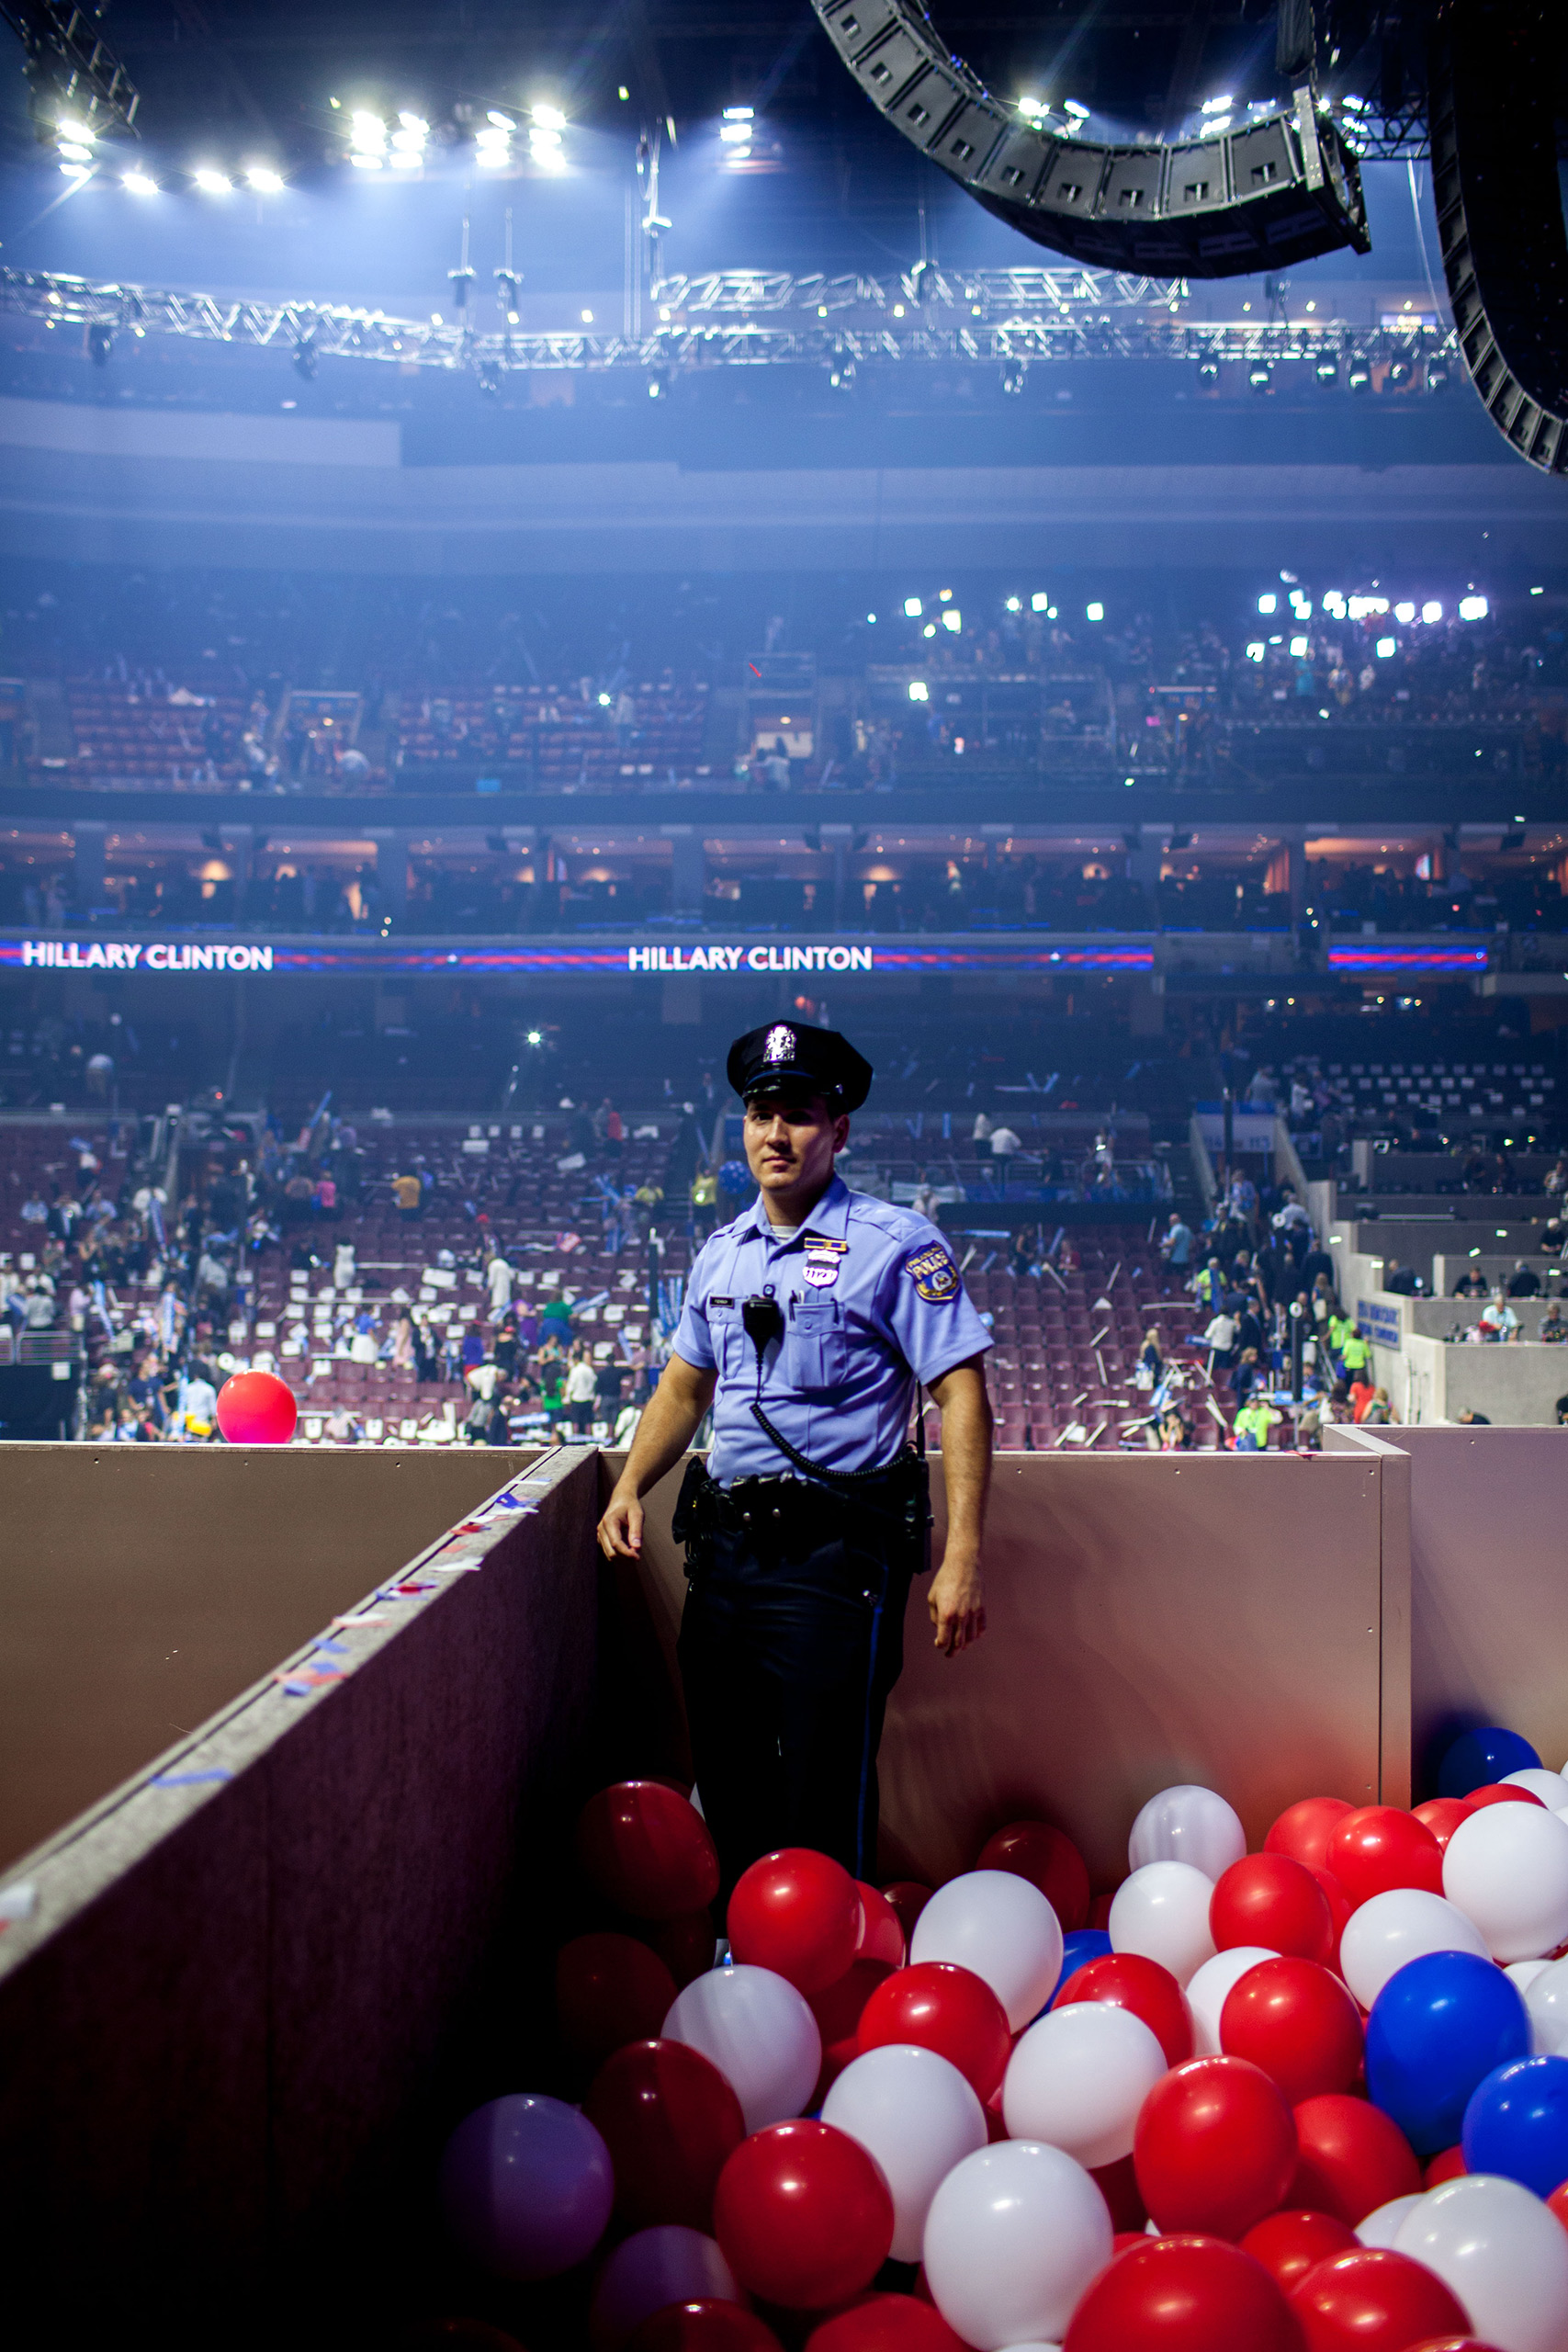 Security backstage on the fourth day of the Democratic National Convention at the Wells Fargo Center in Philadelphia, Pennsylvania July 28, 2016.From  The 82 Most Unforgettable Photos From the Election